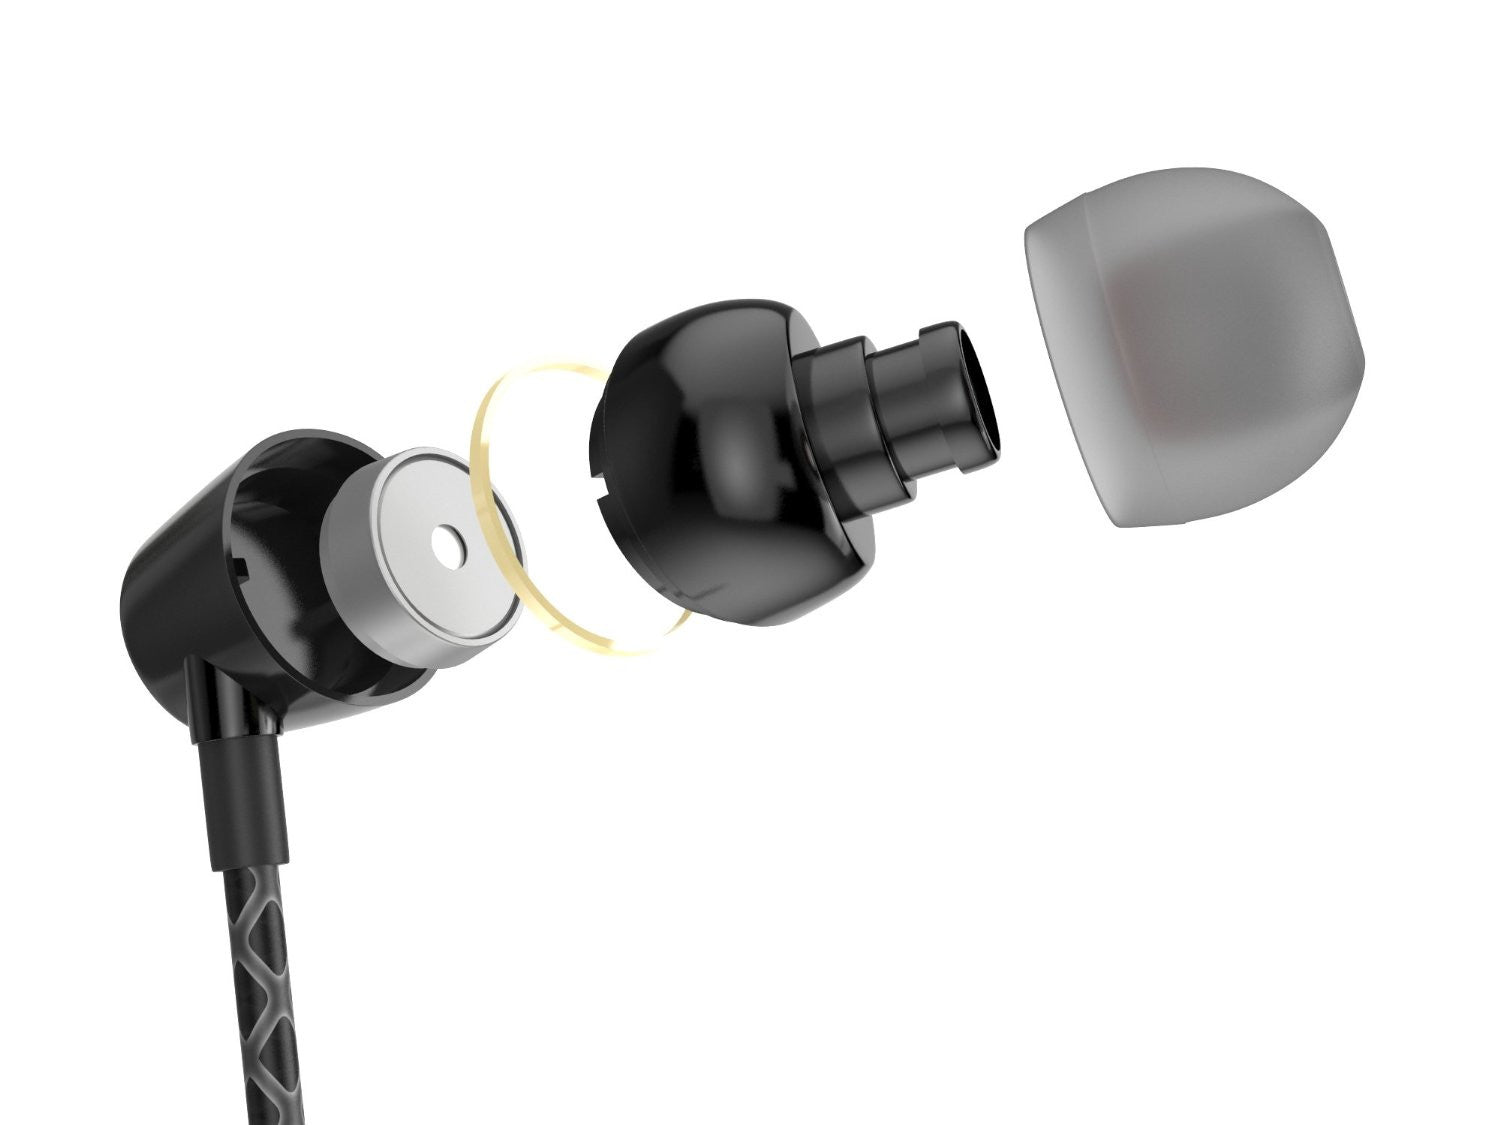 Wired 3.5MM Headphones Earphones, Ghostek Turbine Black Series Wired Earbuds | Built-In Microphone